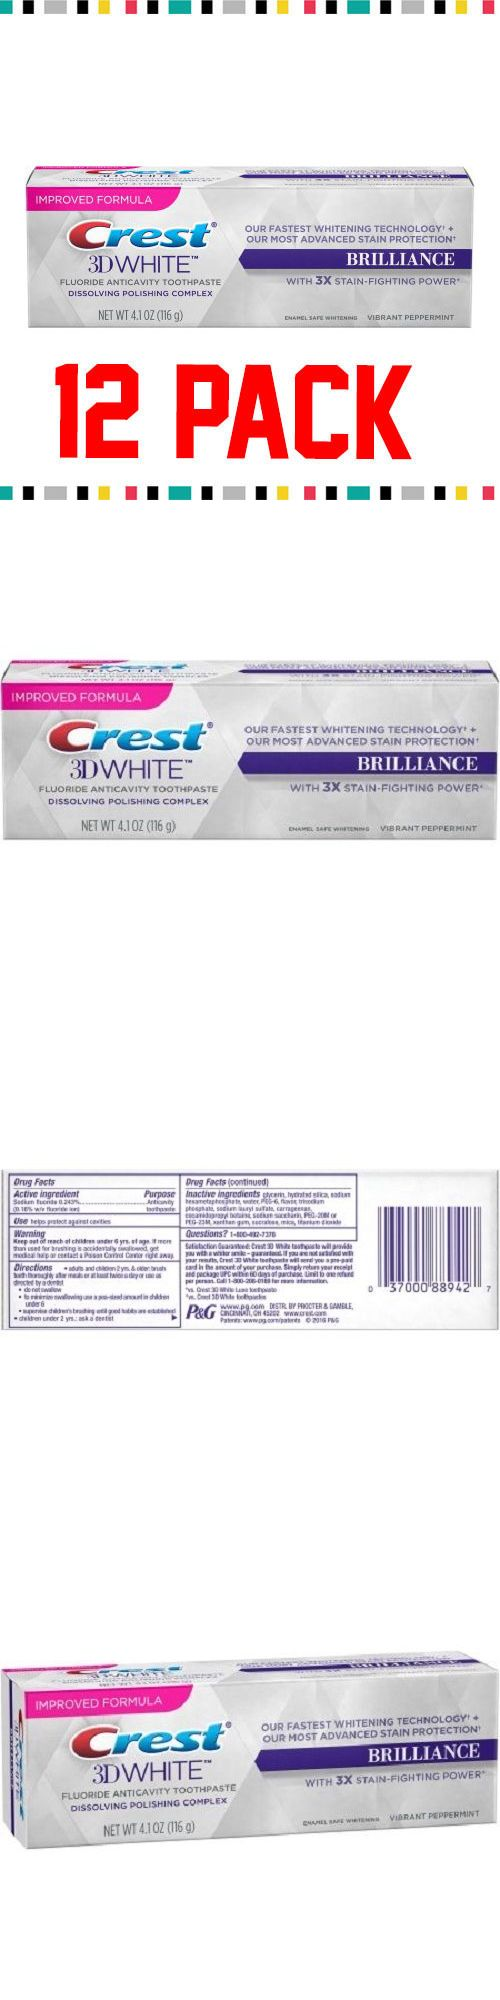 Toothpaste: 12 Pack Of Crest 3D White Brilliance Mint Toothpaste 4.1 Oz Vibrant Peppermint -> BUY IT NOW ONLY: $77.24 on eBay!